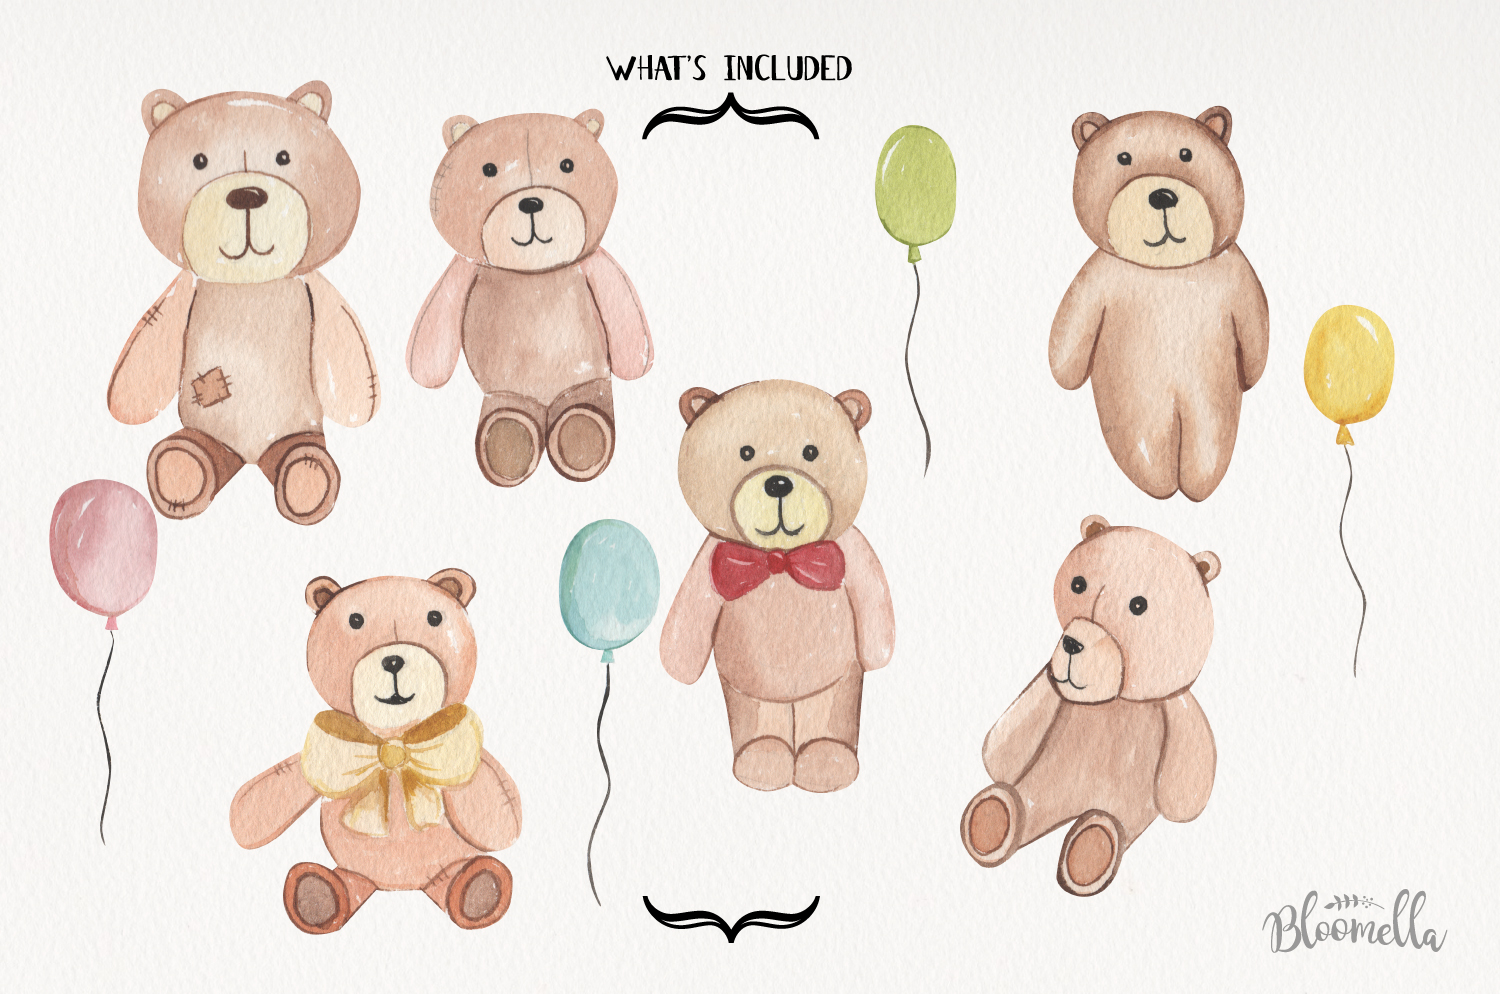 Teddy Bear Watercolor 10 Elements With Balloons Fun Bears example image 3